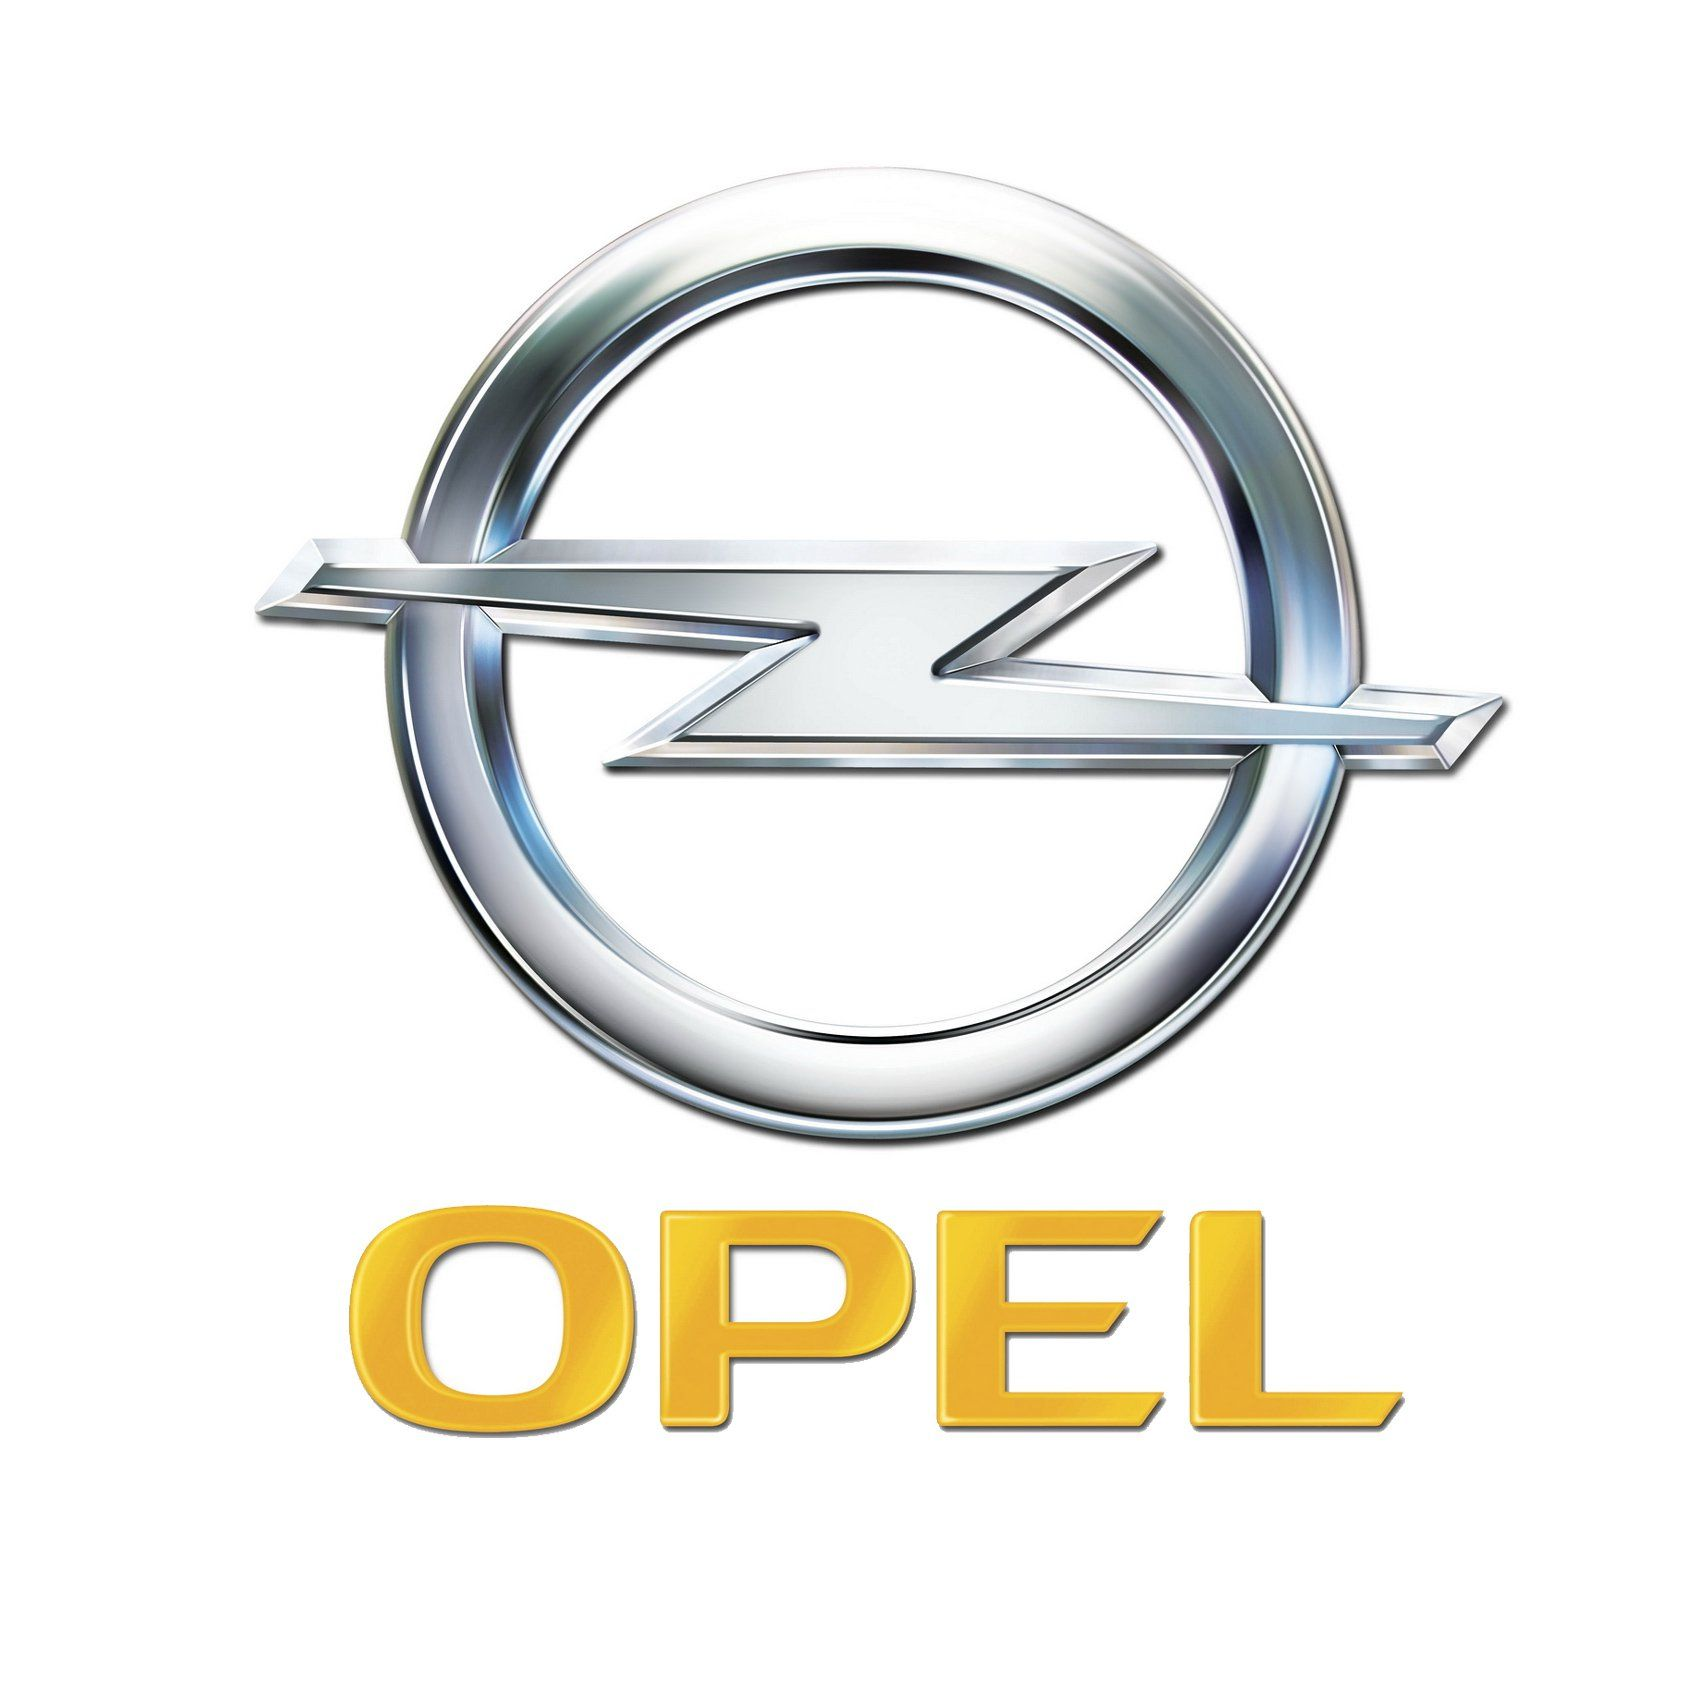 Opel logo opel pinterest car logos and cars cars fandeluxe Image collections